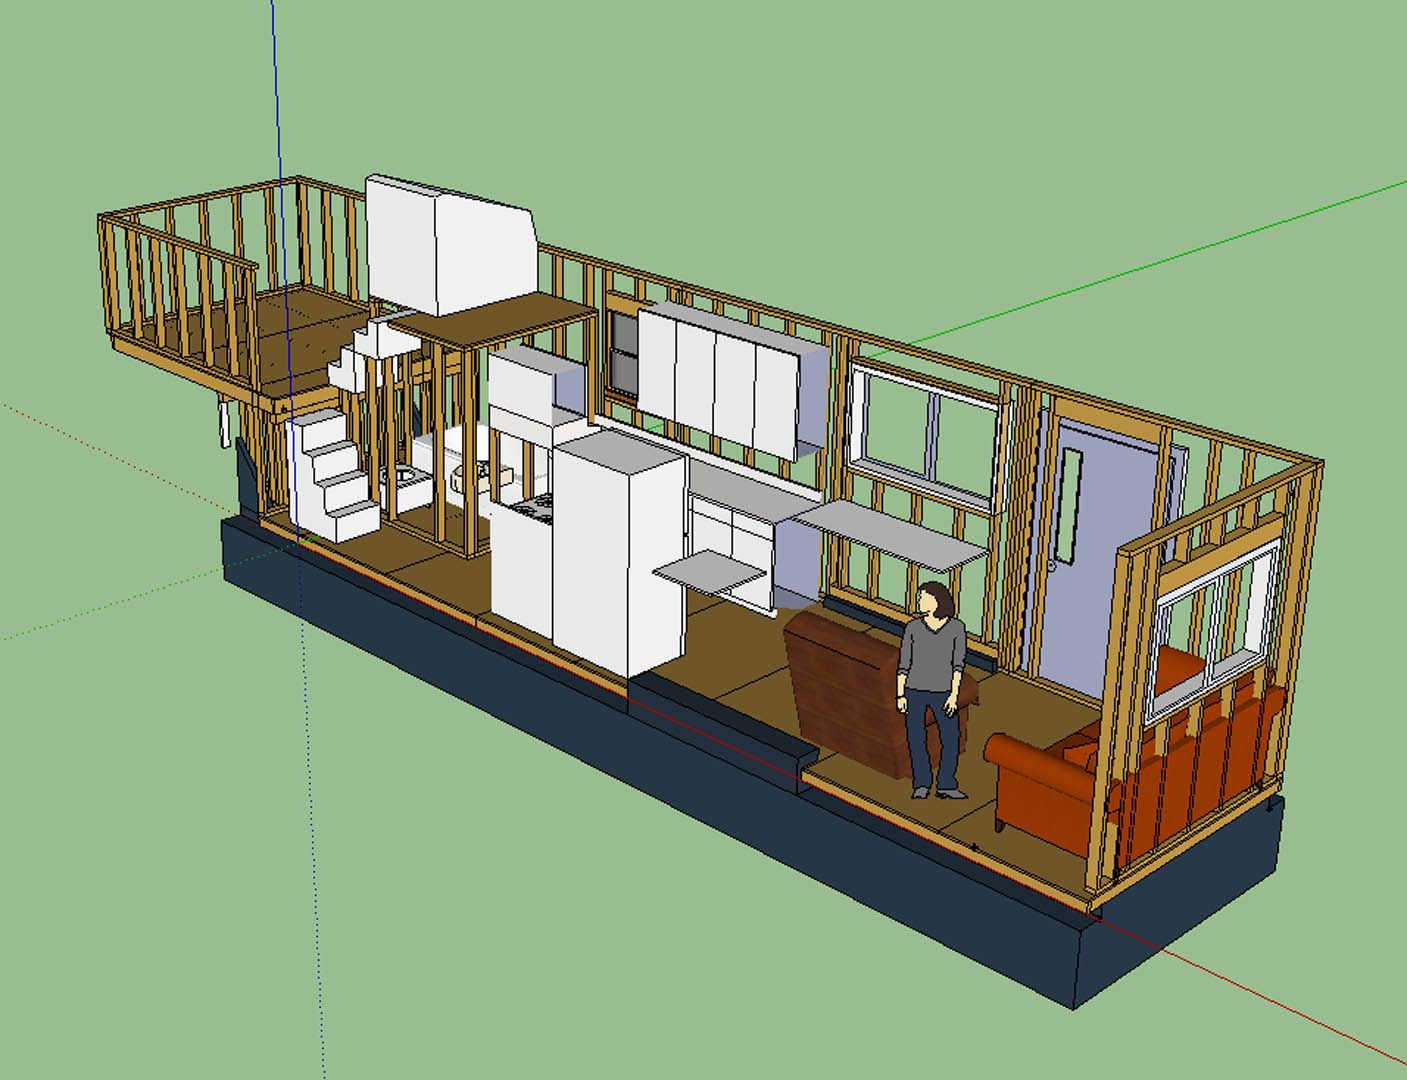 Tiny House Plans On Wheels tiny house layout has master bedroom over fifth-wheel hitch, with